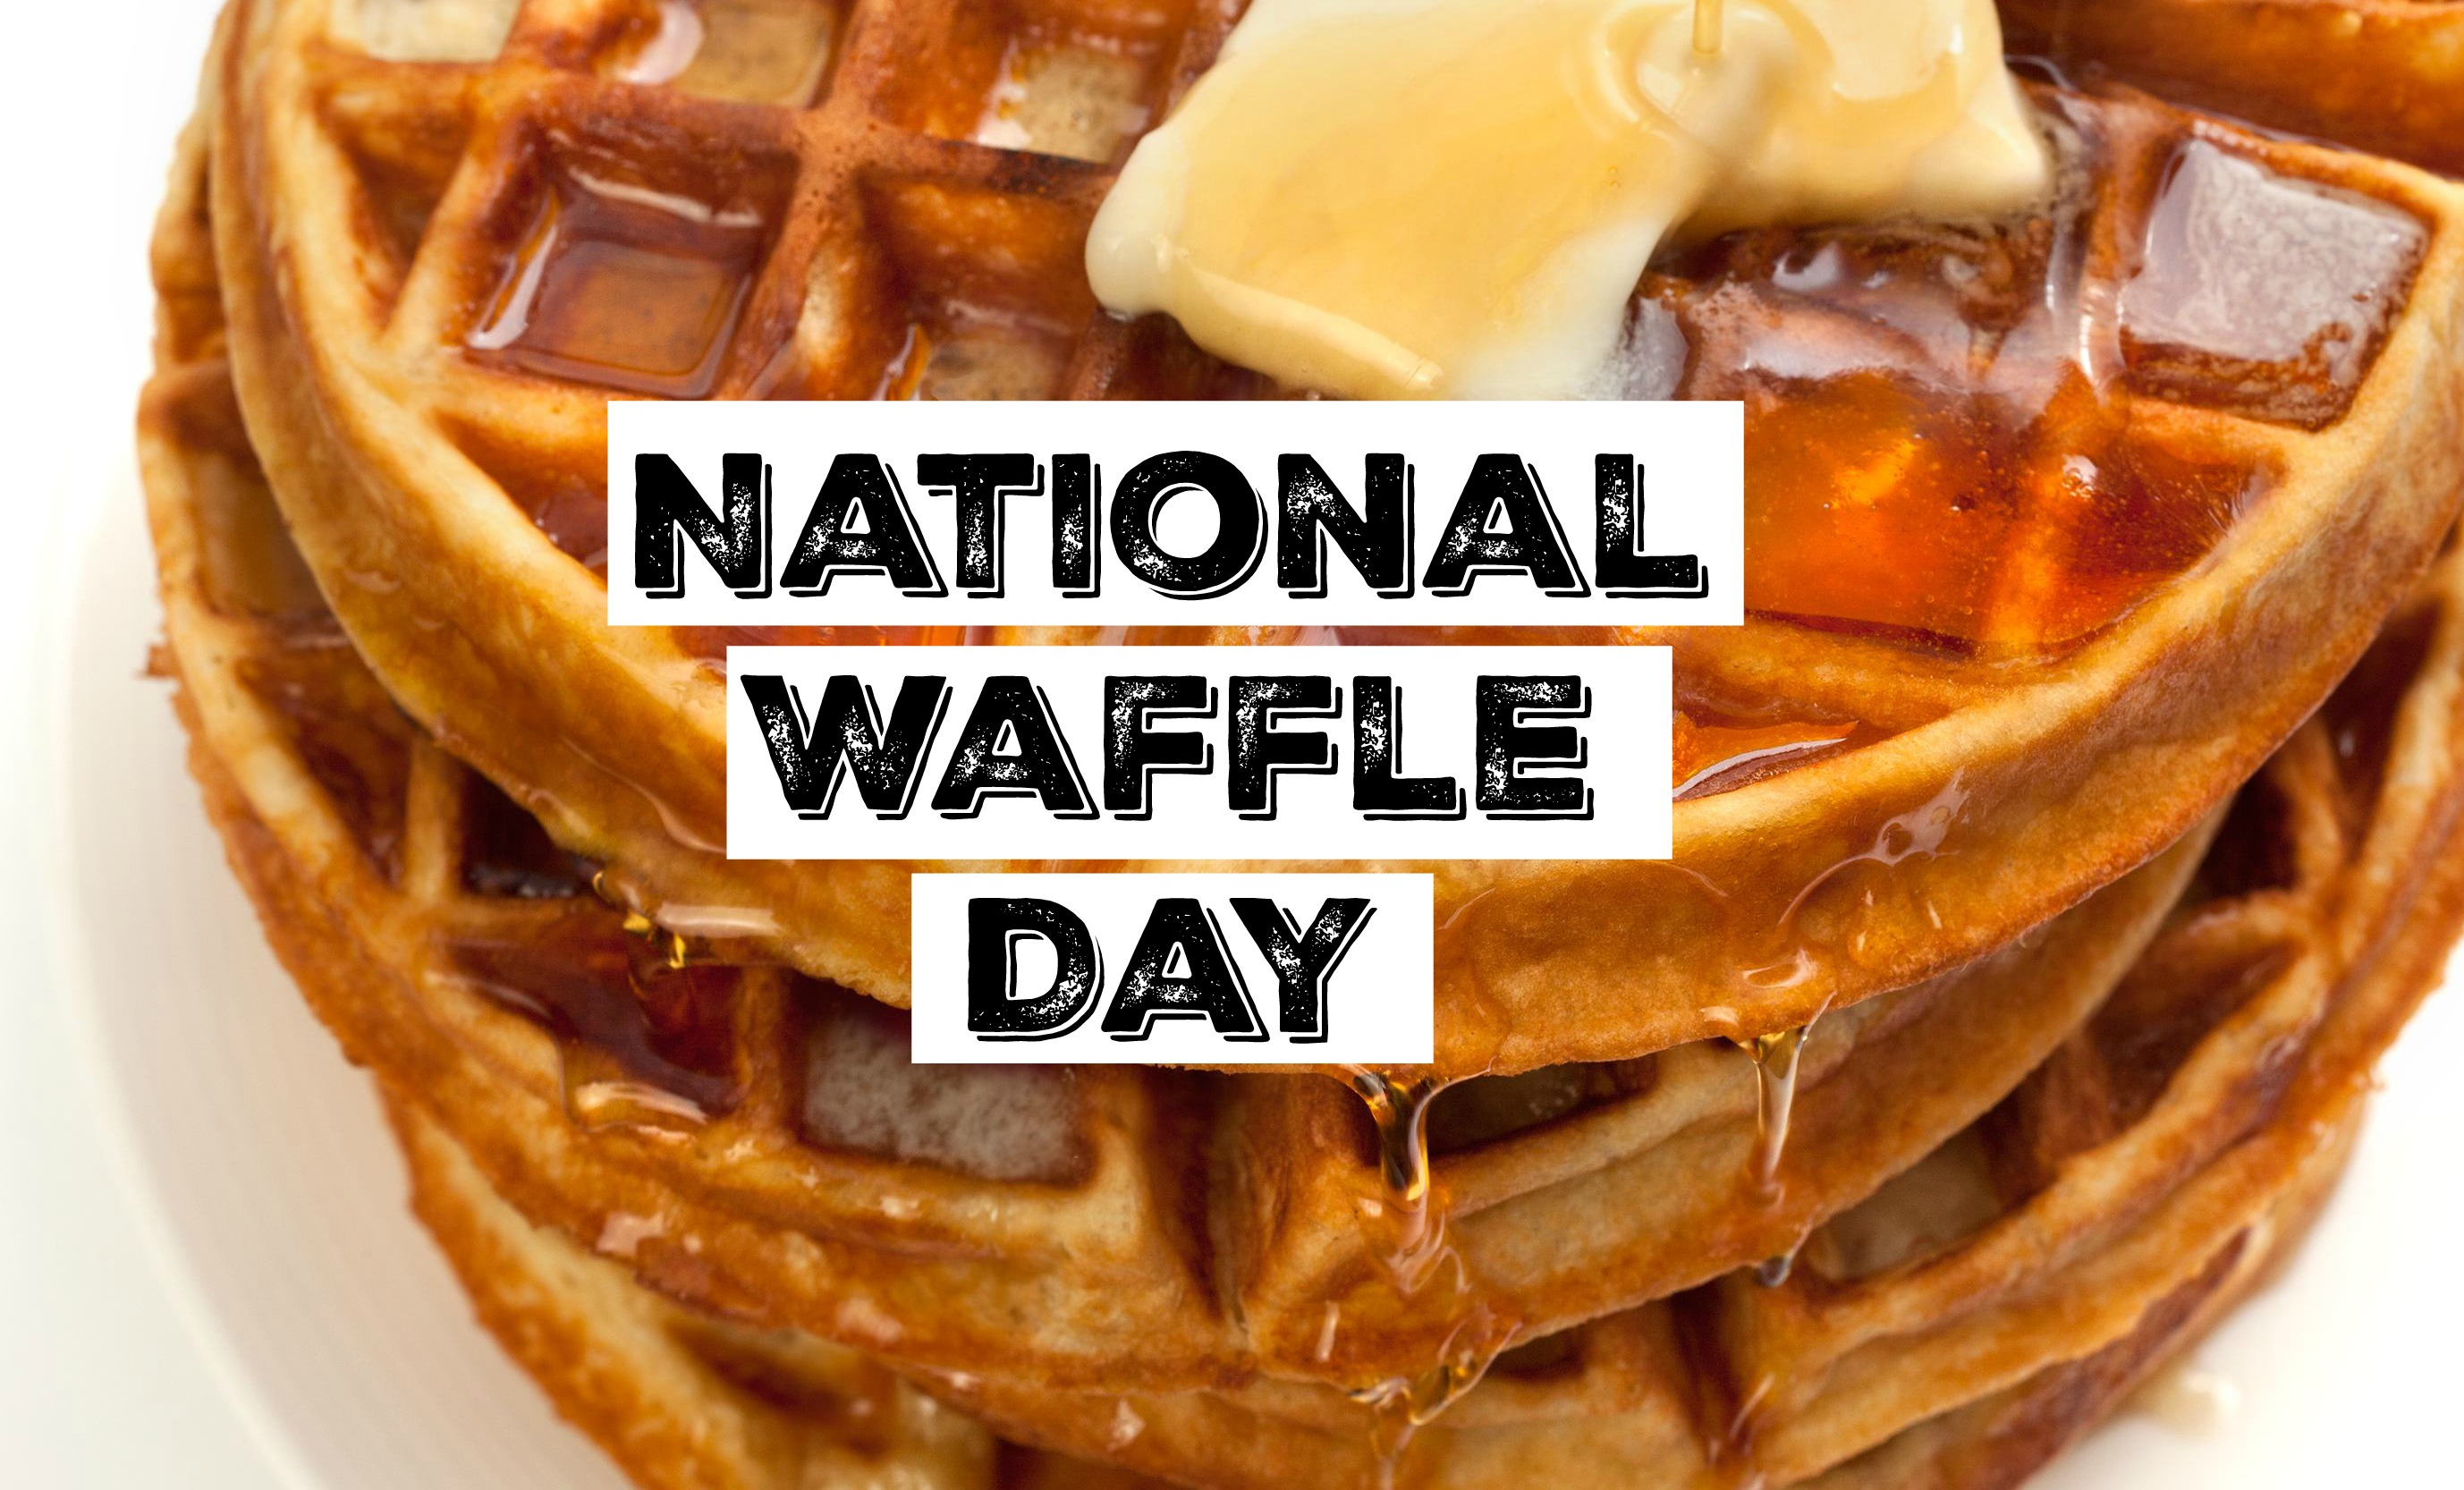 Waffle day clipart jpg black and white stock HipNJ Celebrates National Waffle Day jpg black and white stock